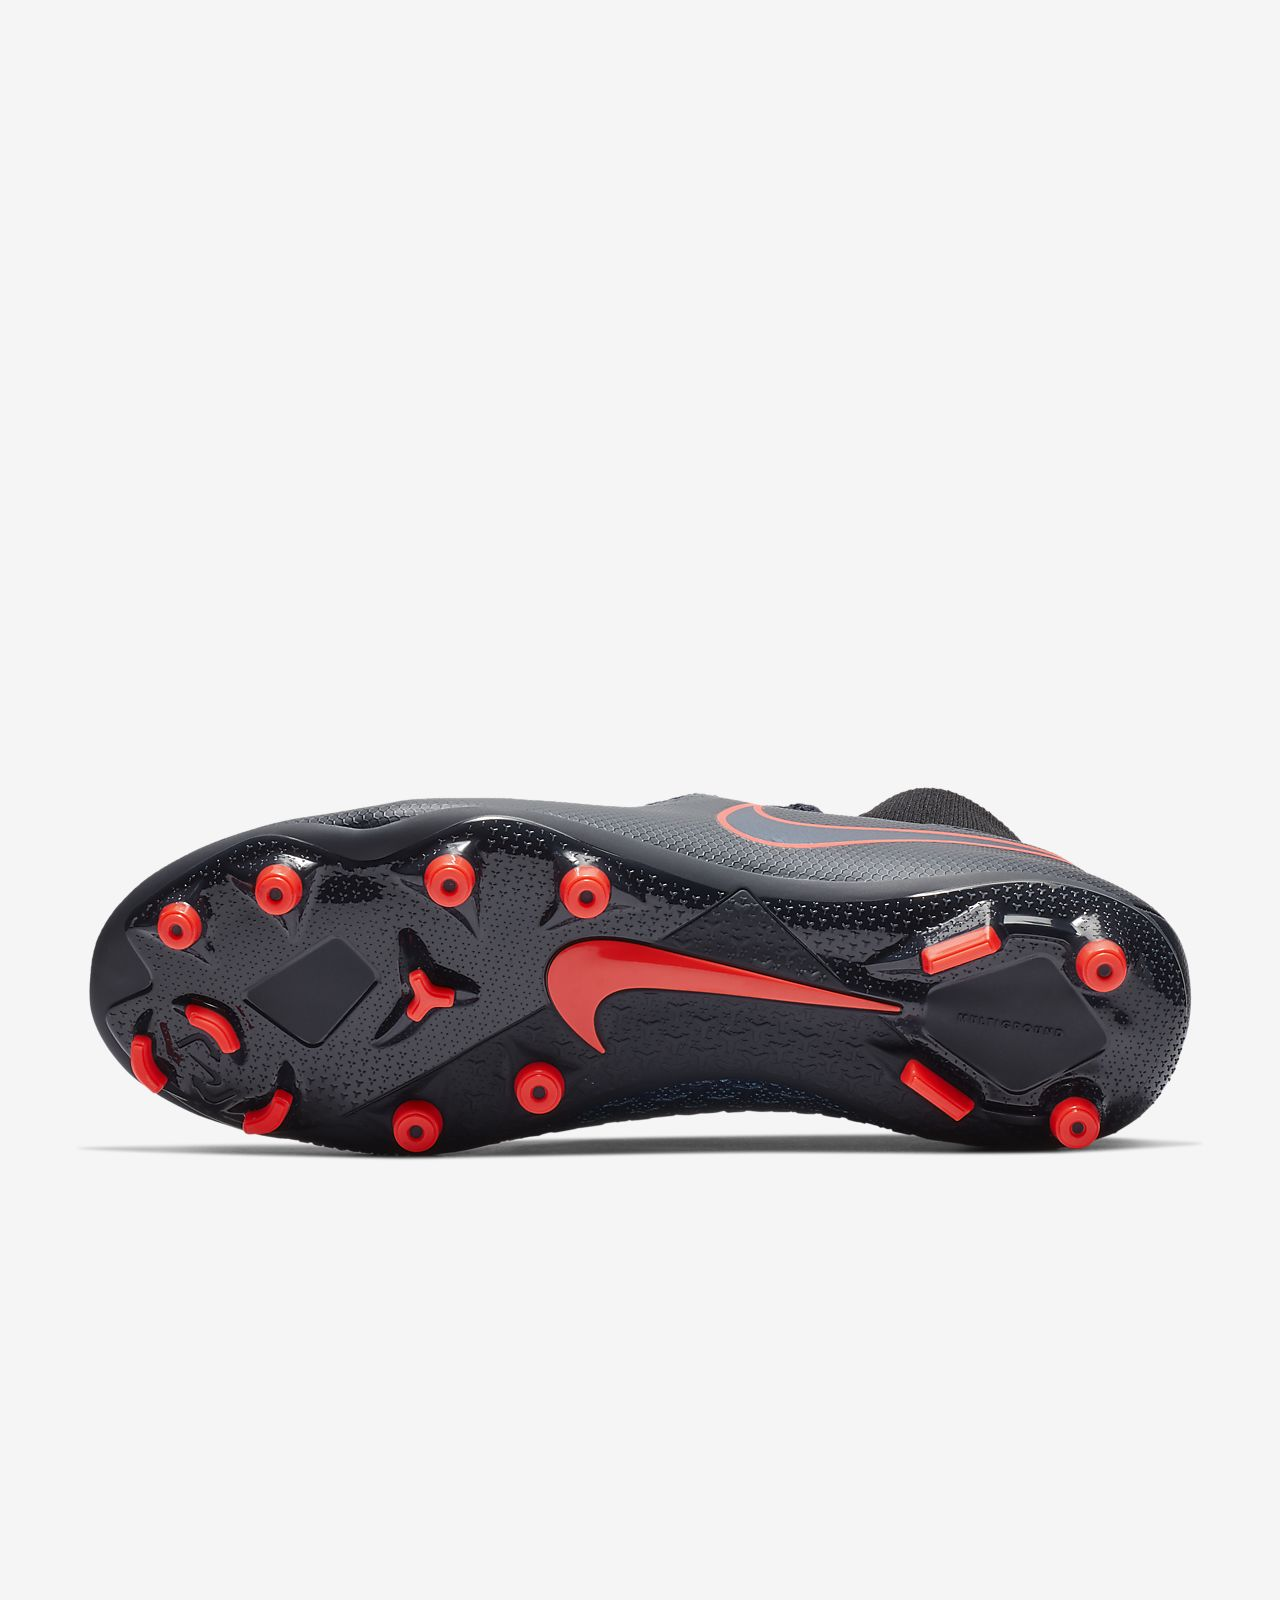 finest selection 71eb0 9cc5b ... Nike Phantom Vision Academy Dynamic Fit MG Multi-Ground Soccer Cleat